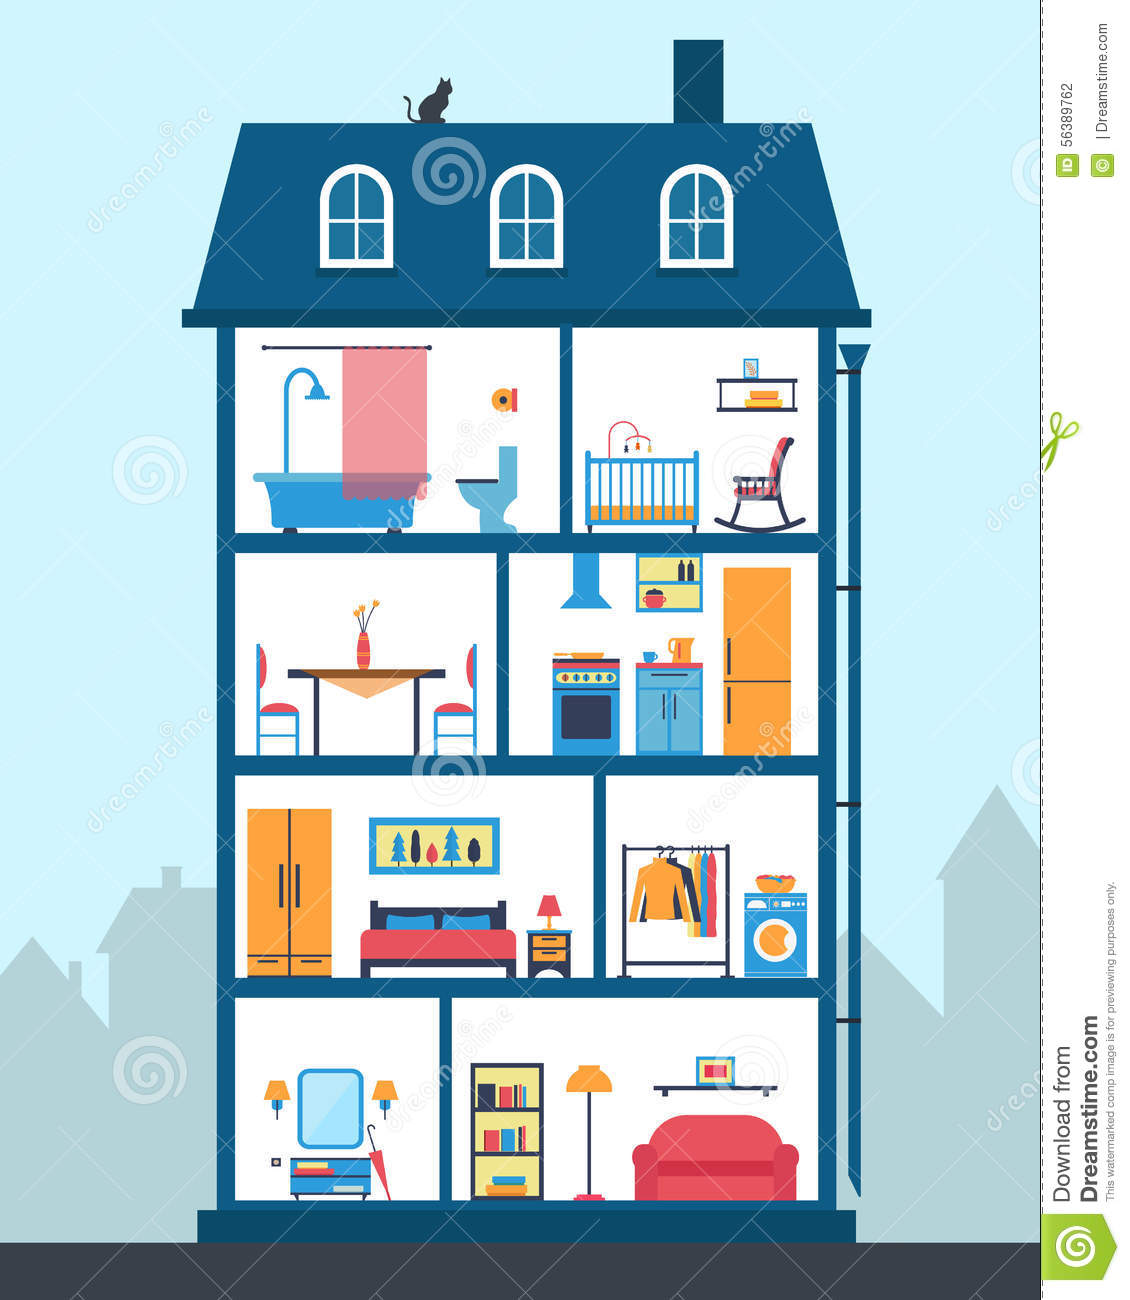 house cut detailed modern house interior rooms furniture flat style vector illustration 56389762